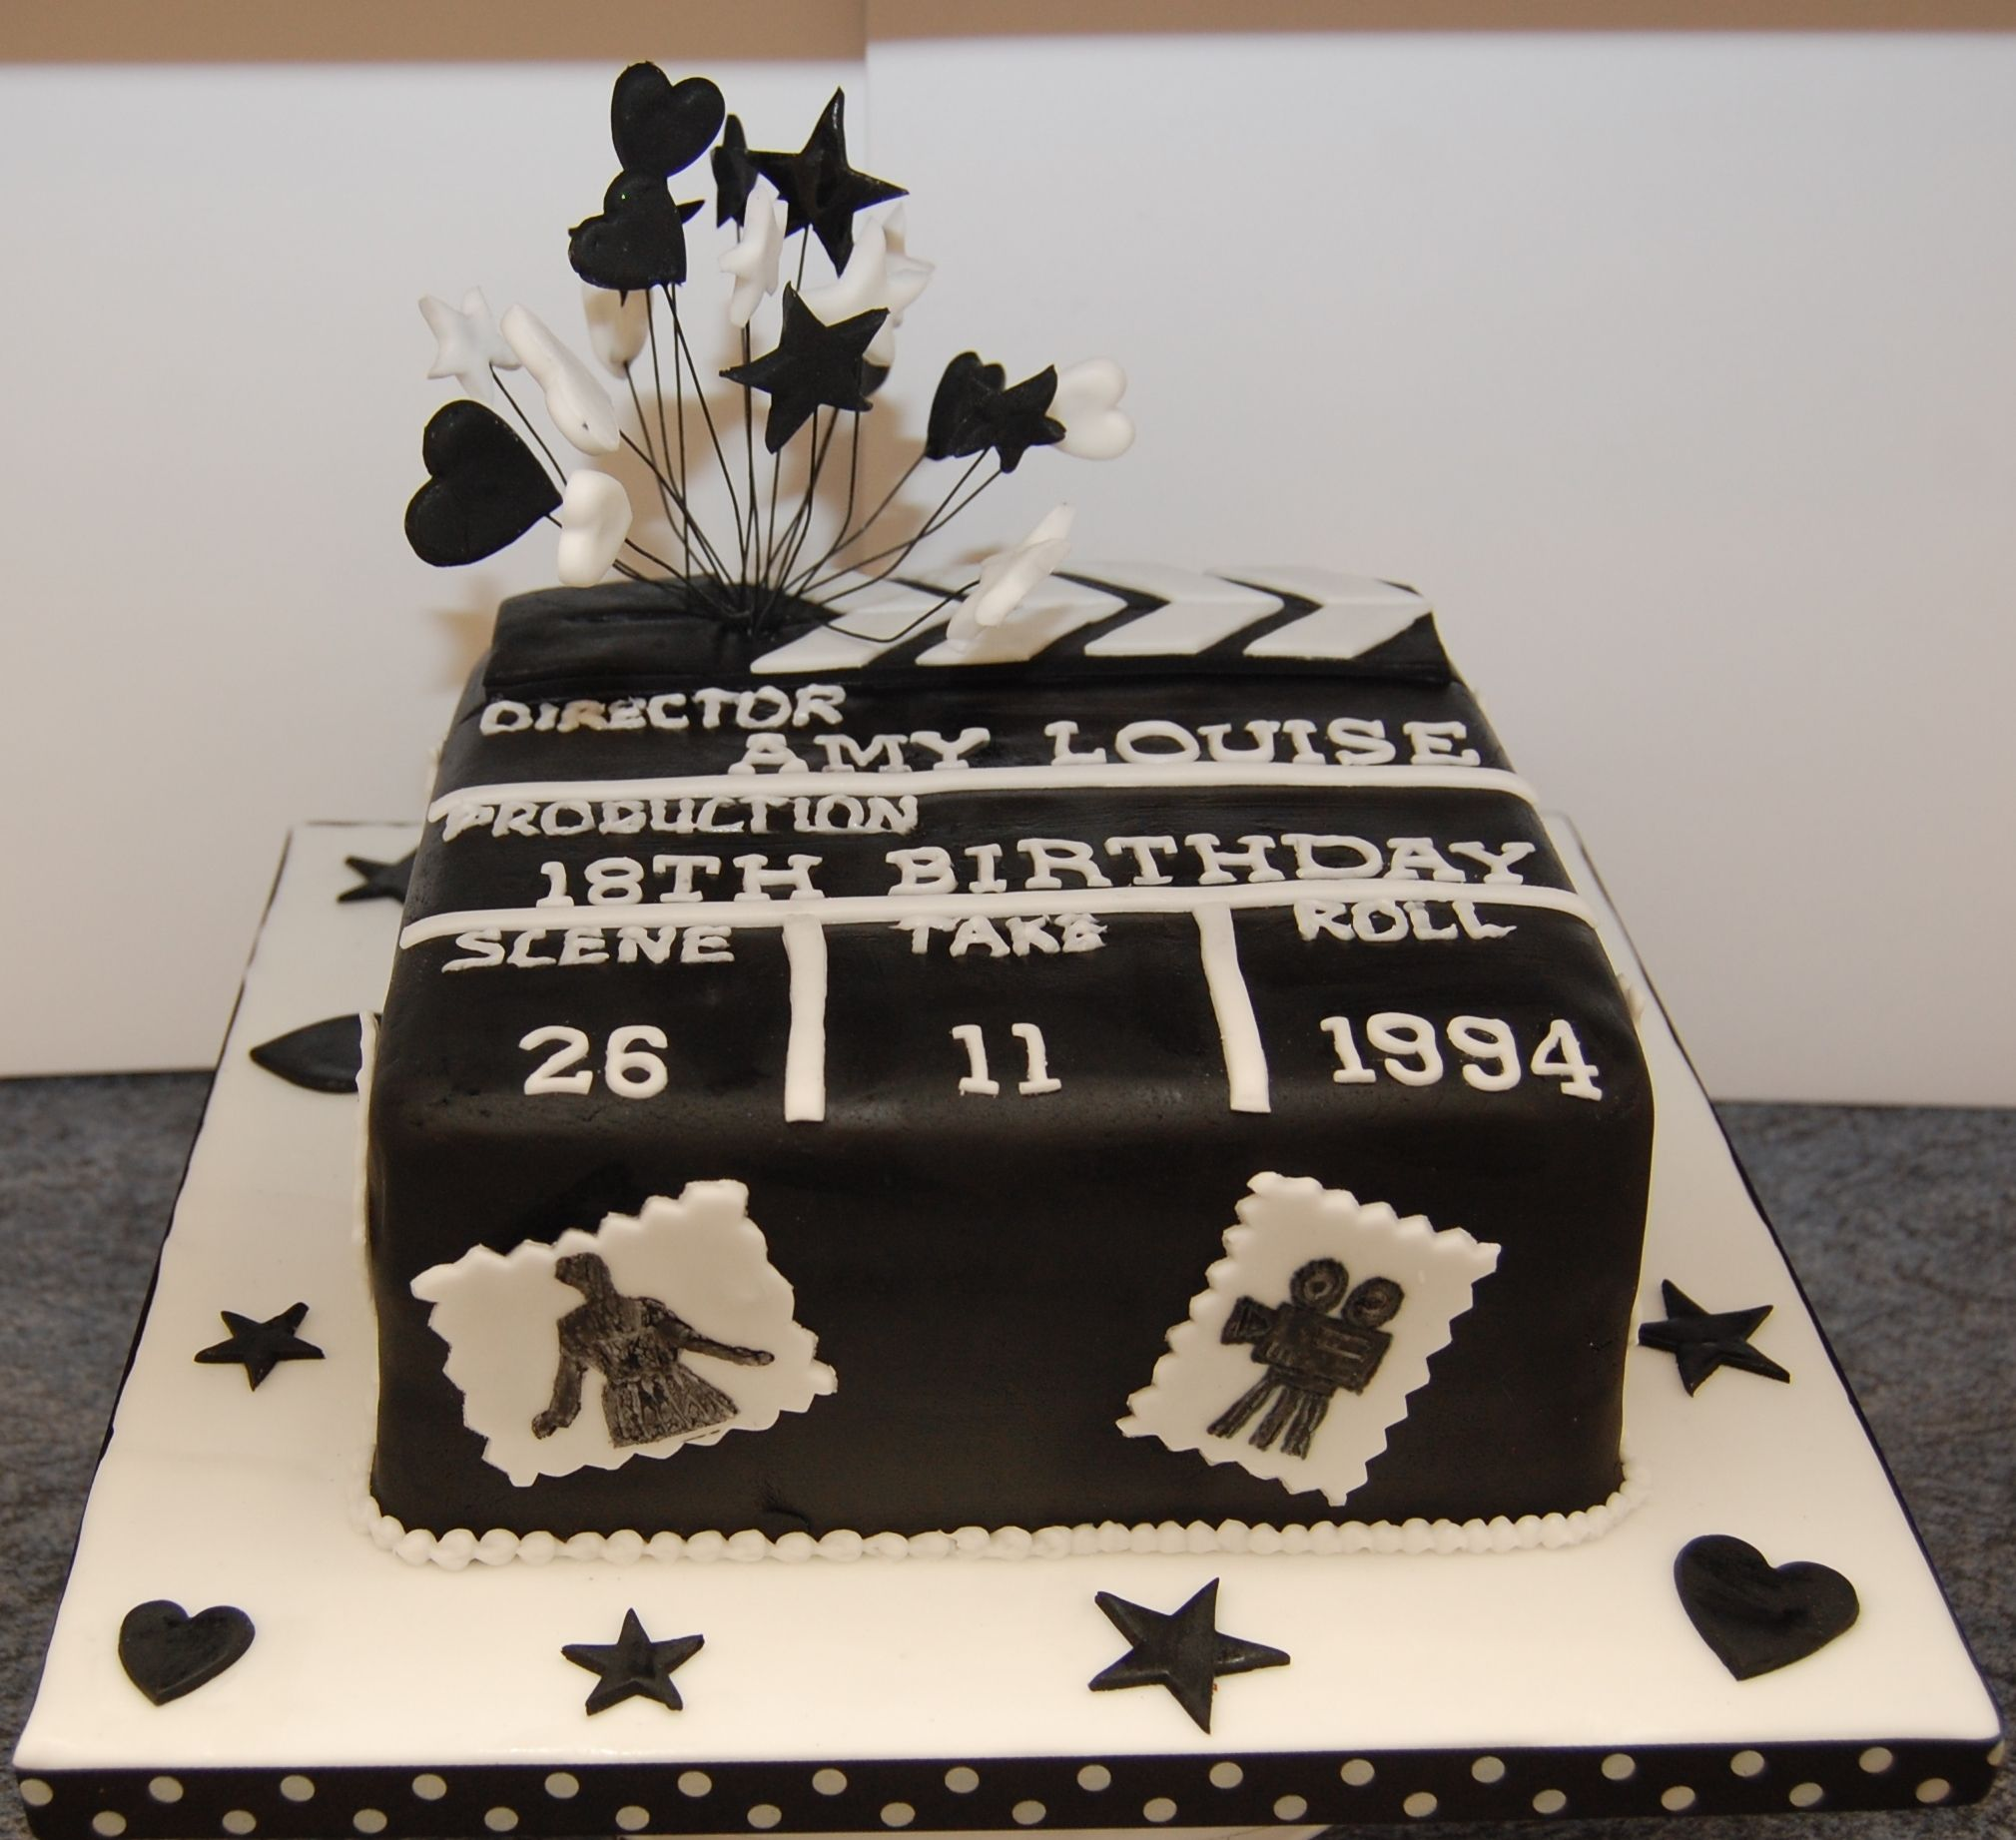 Google themes hearts - Amys 18th Birthday Cake Clapperboard Black And White Icing Stars Hearts And Move Theme 2 18th